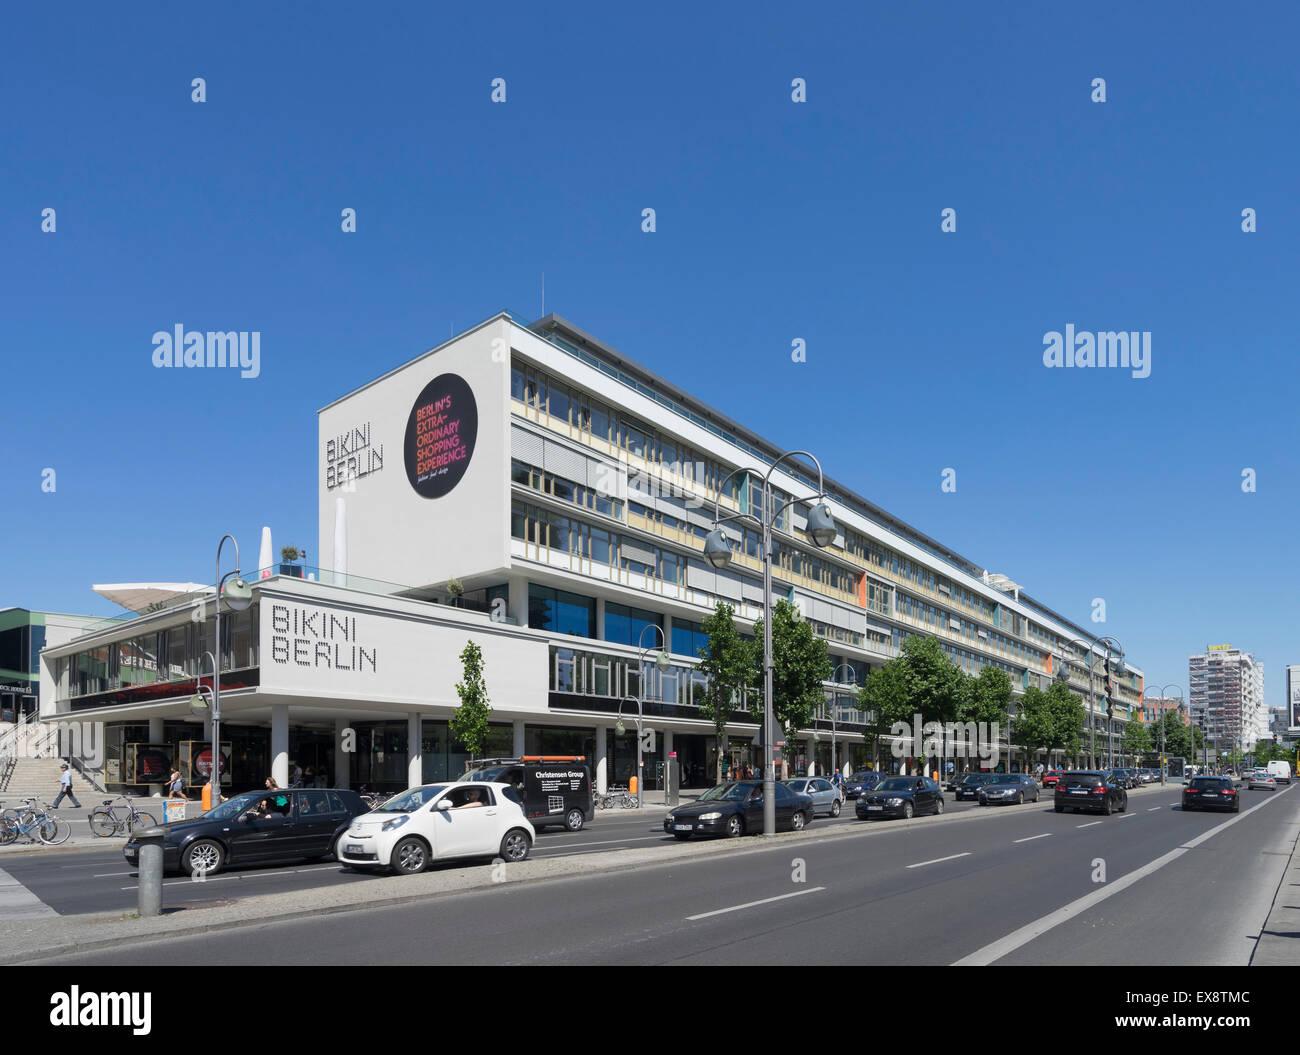 Exterior view of new bikini berlin upmarket fashion and for Shopping mall exterior design